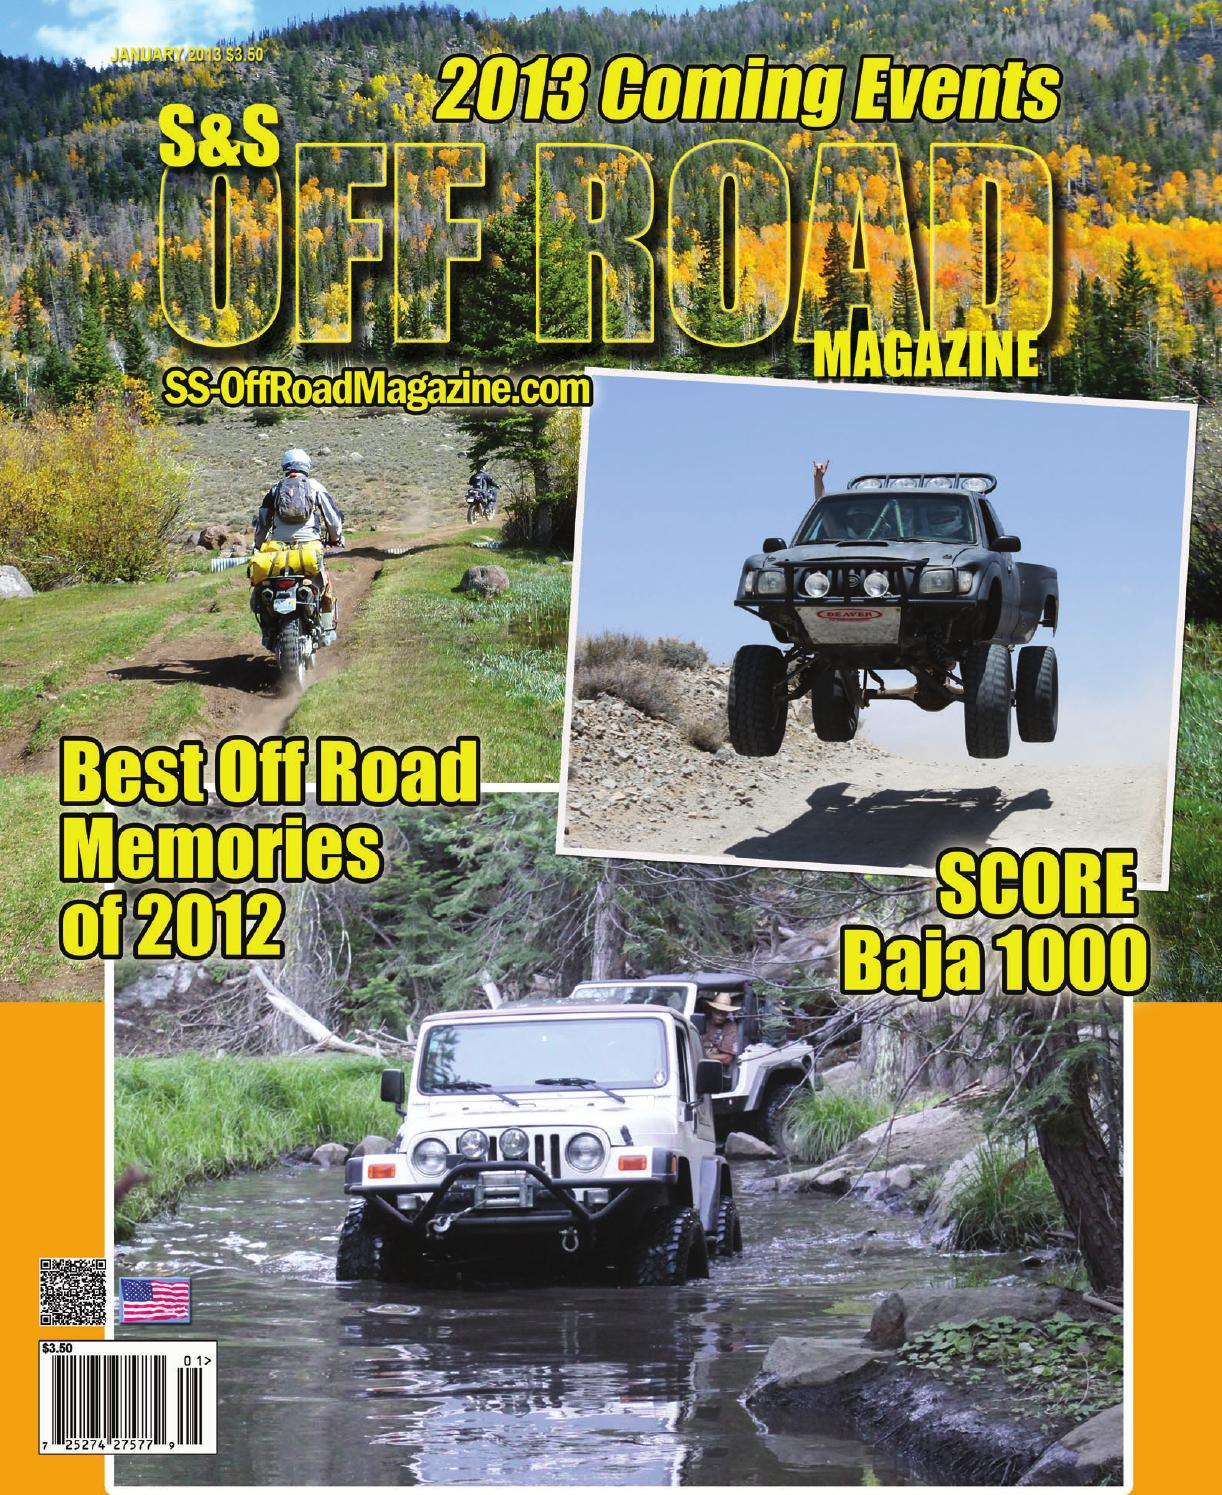 s s off road magazine january 2013 by s s off road magazine issuu. Black Bedroom Furniture Sets. Home Design Ideas